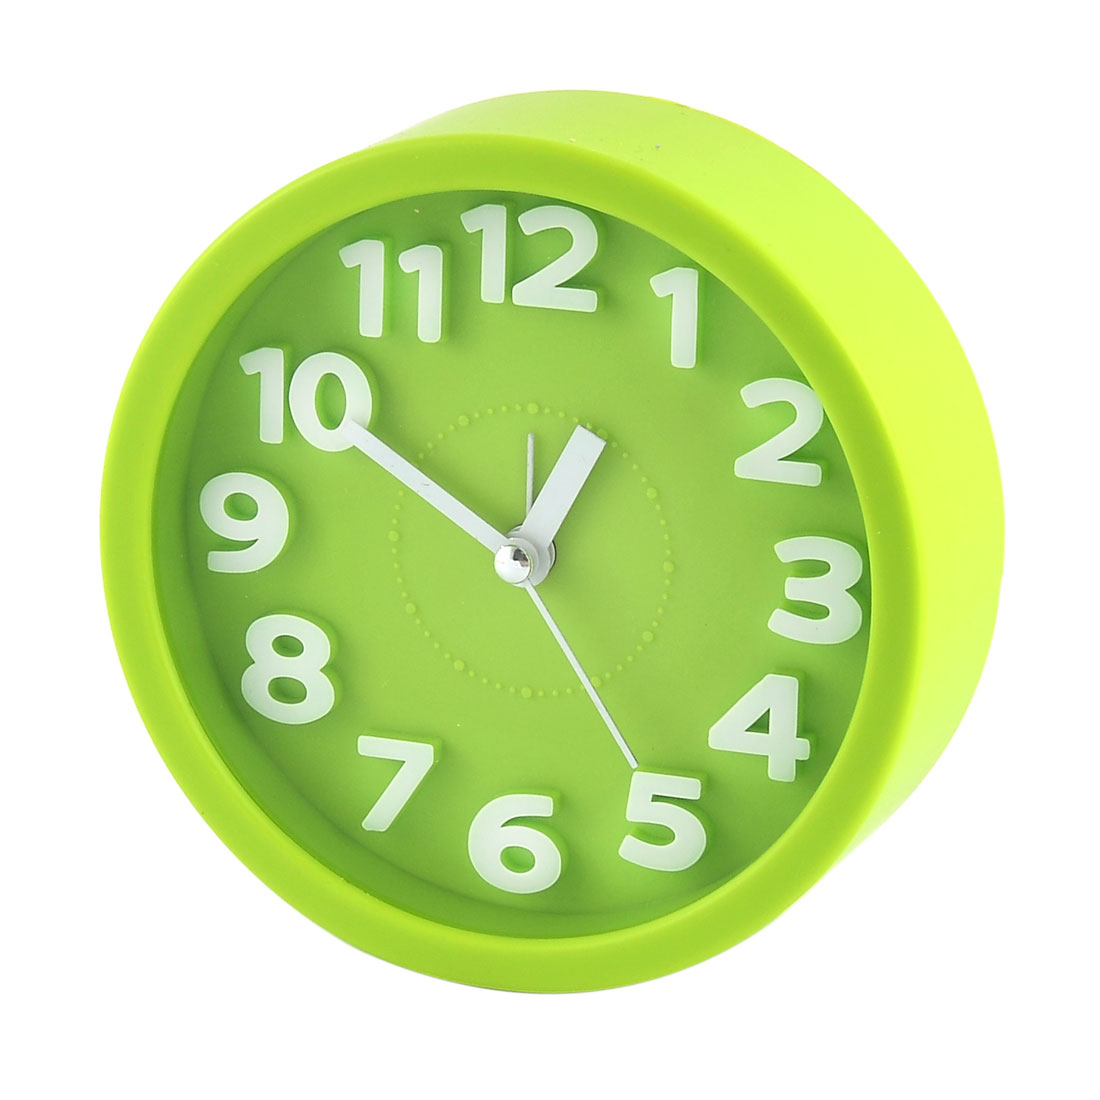 Household Office Desktop Plastic Round Silent Battery Powered Arabic Number Alarm Clock Green